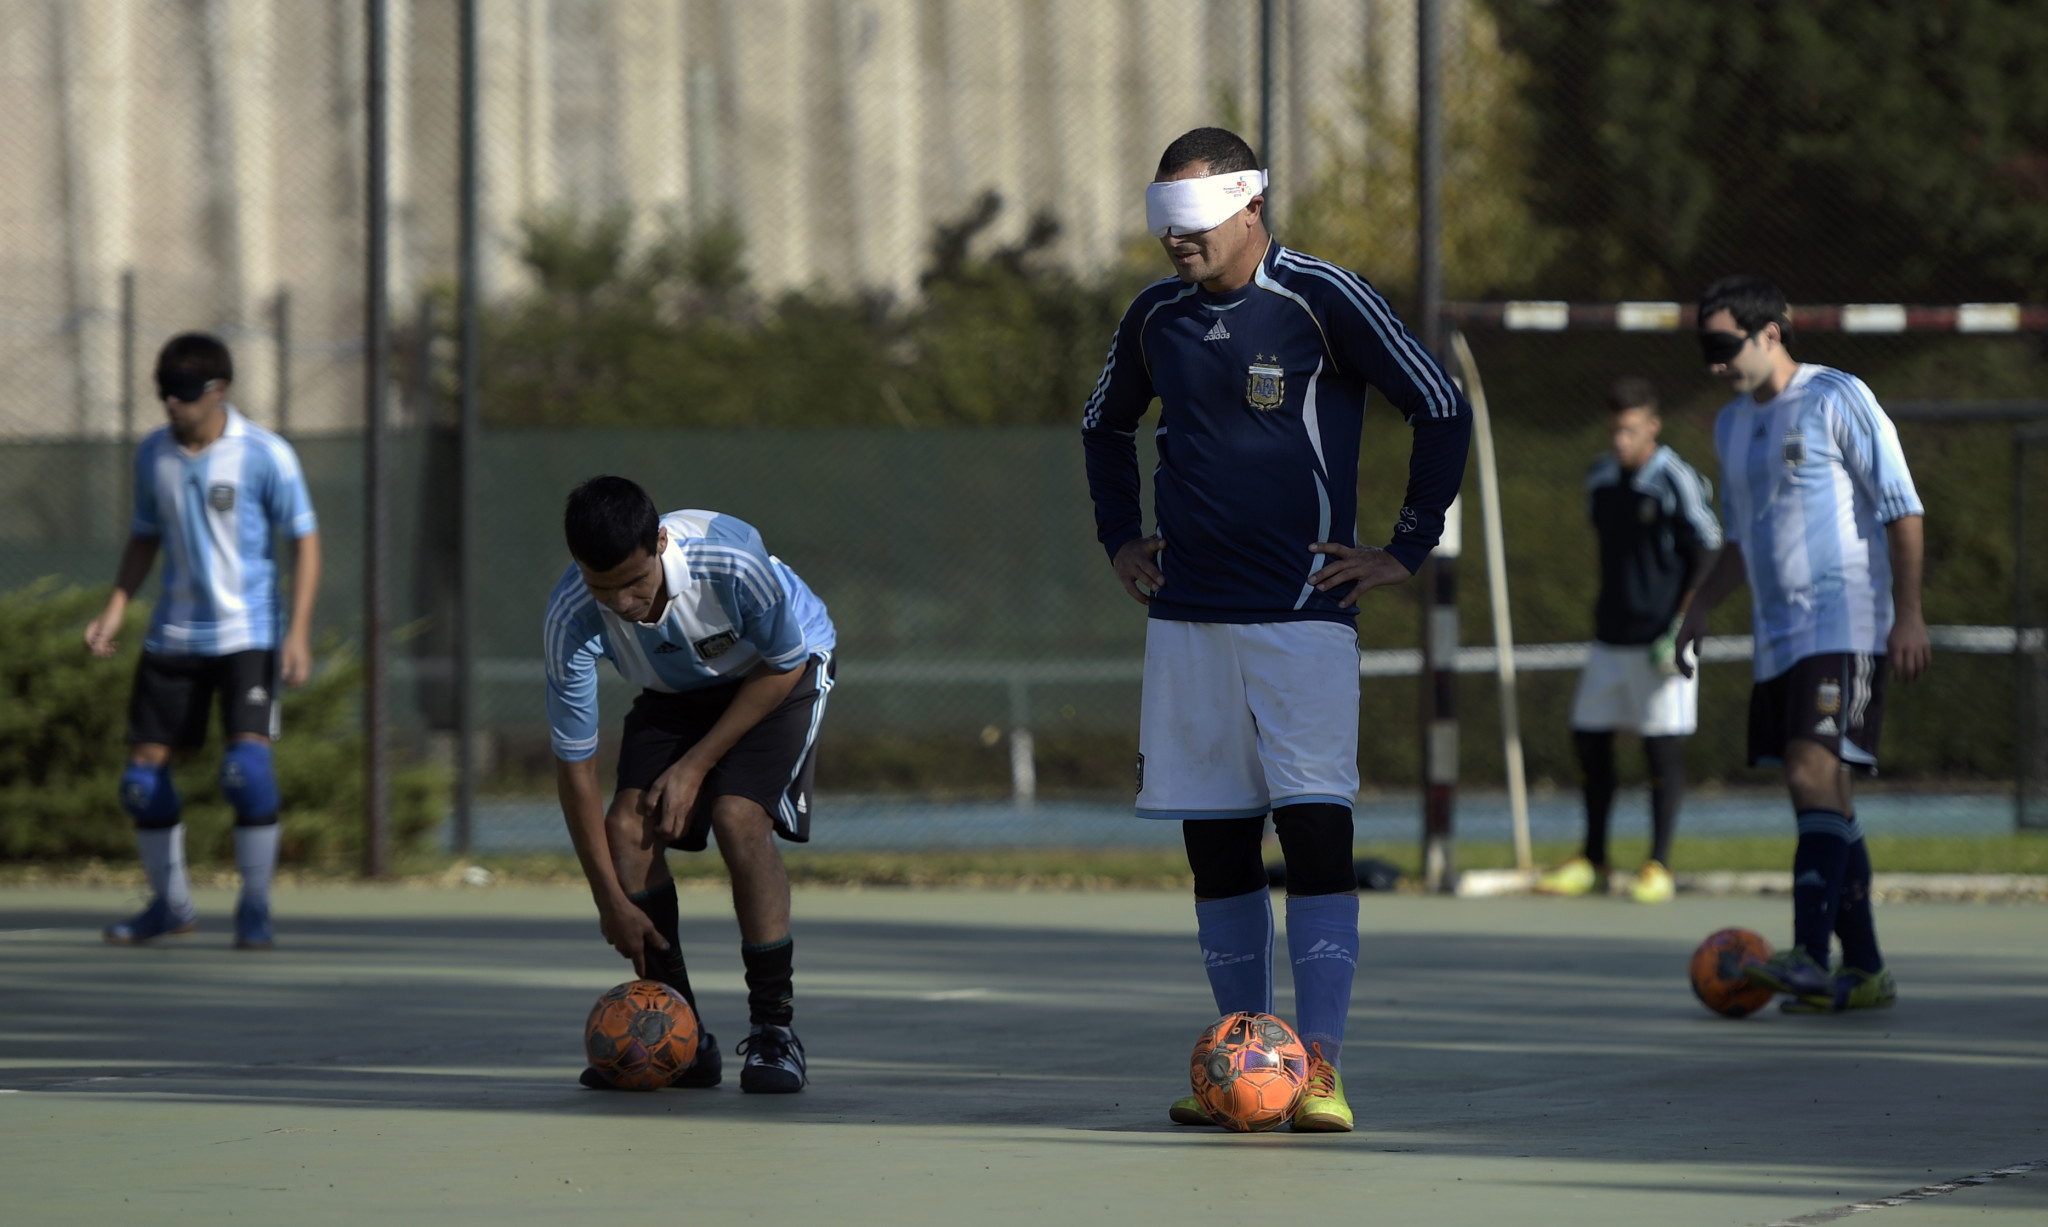 The IBSA Blind Football Americas Championships is being held at the Brazil Paralympic Training Centre in São Paulo where Argentina will be renewing their rivalry with hosts Brazil ©Getty Images